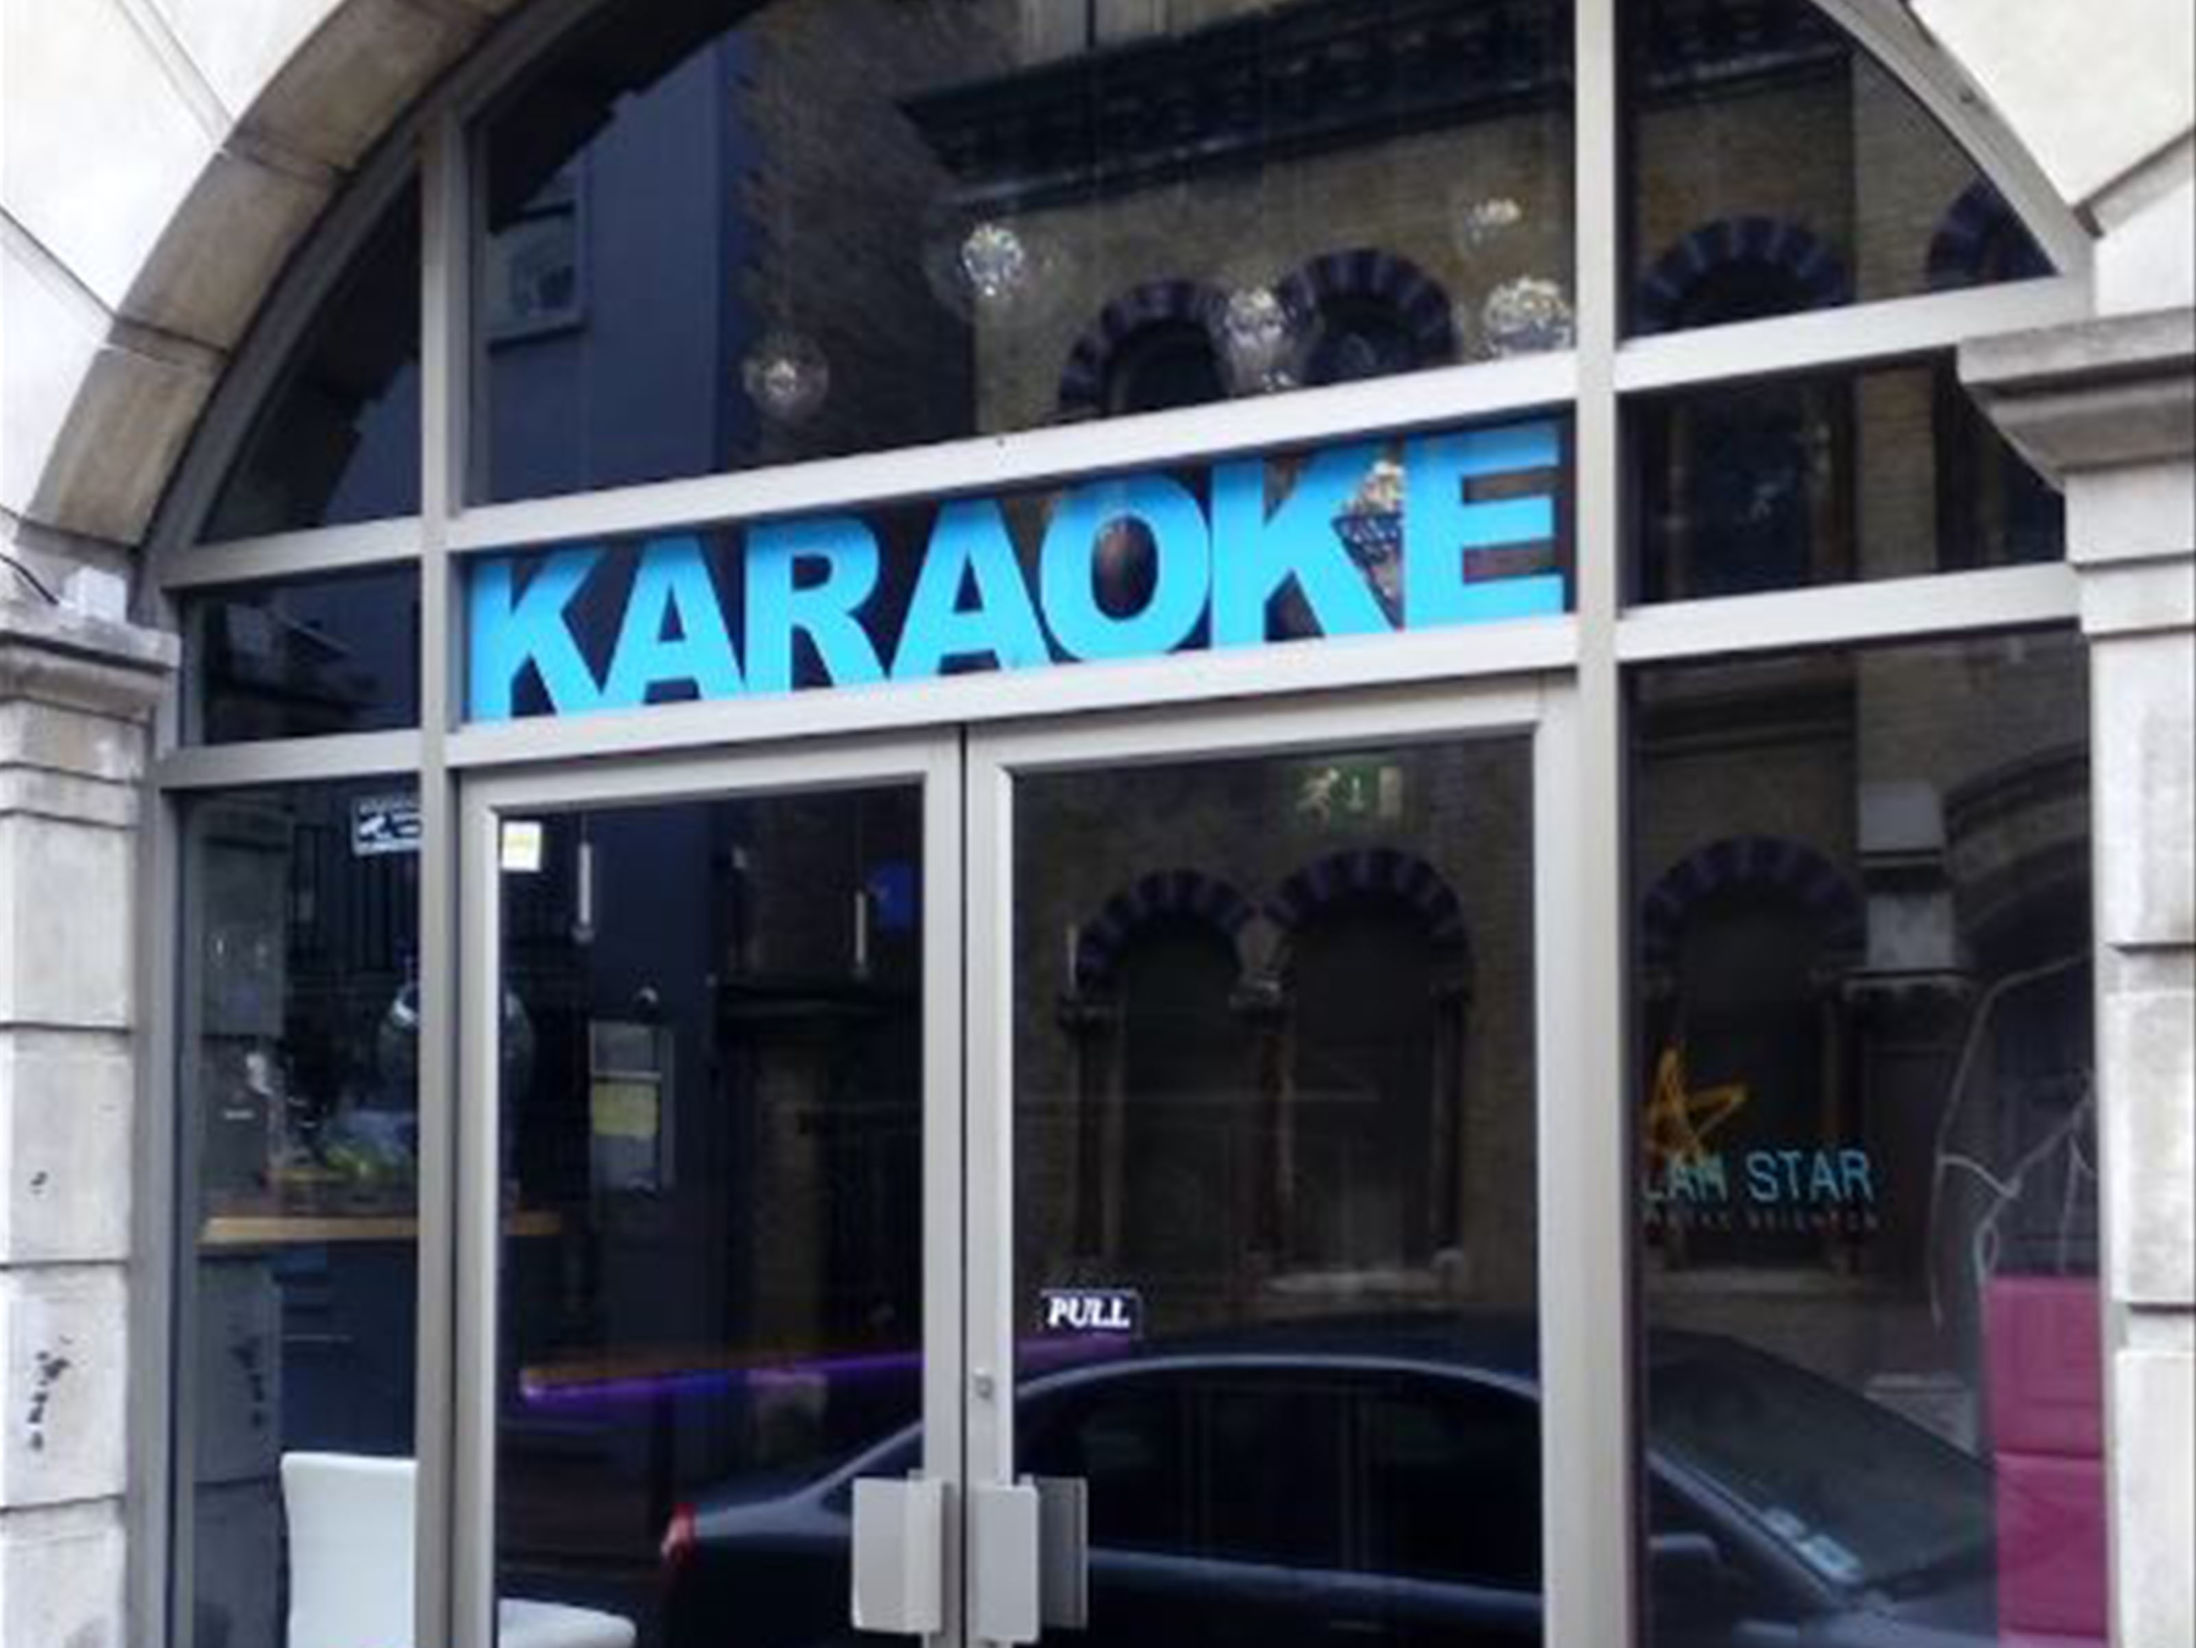 Best Bars in Brighton - Slam Star Karaoke